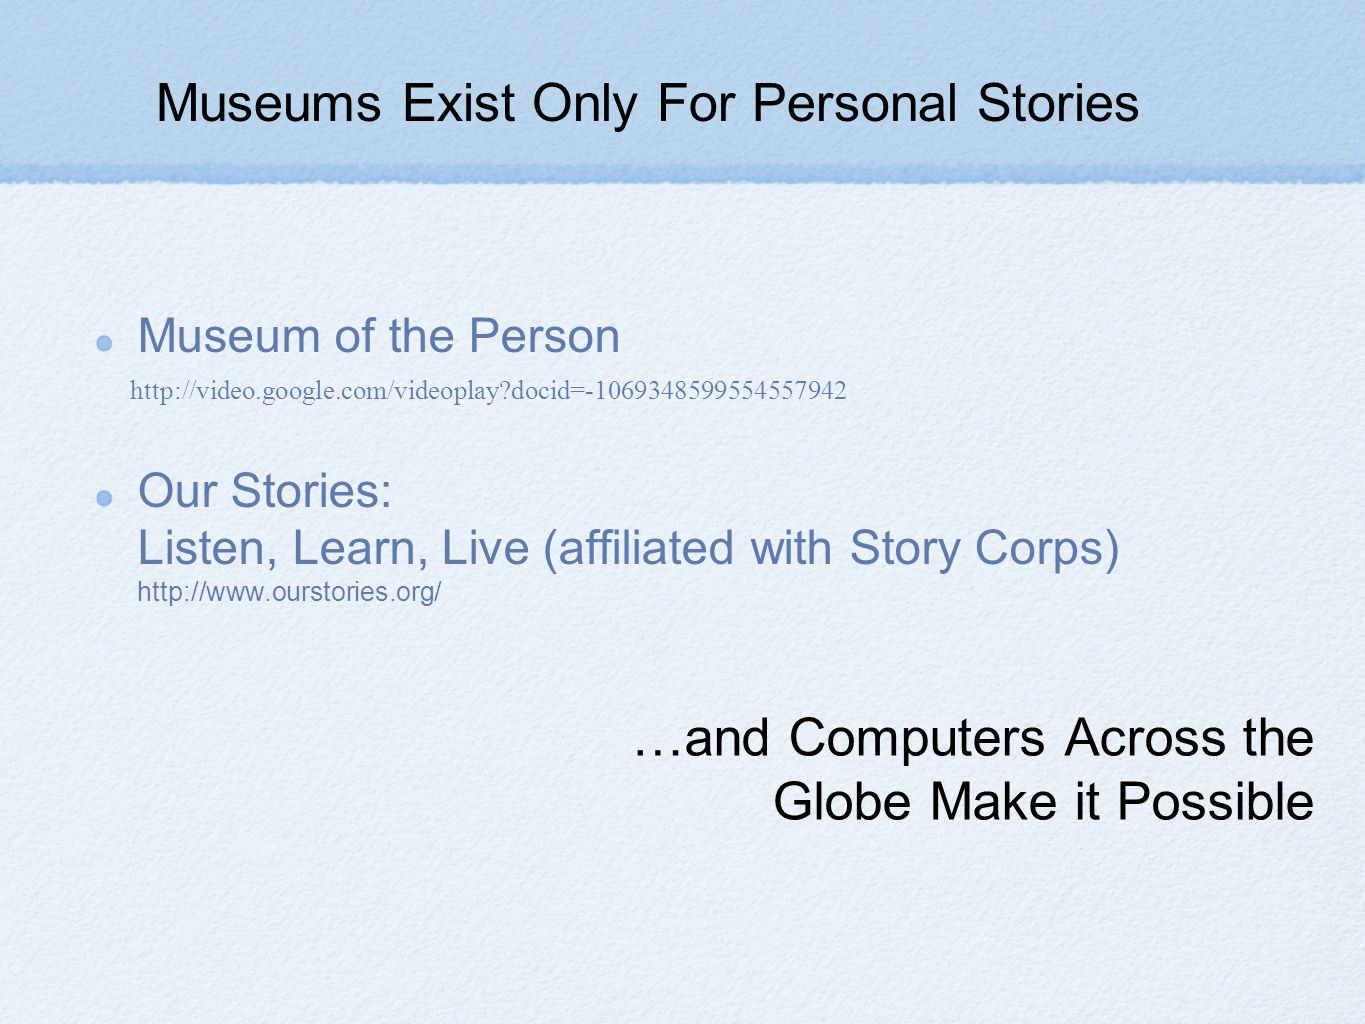 …and Computers Across the Globe Make it Possible Museum of the Person Our Stories: Listen, Learn, Live (affiliated with Story Corps) http://www.ourstories.org/ http://video.google.com/videoplay docid=-1069348599554557942 Museums Exist Only For Personal Stories